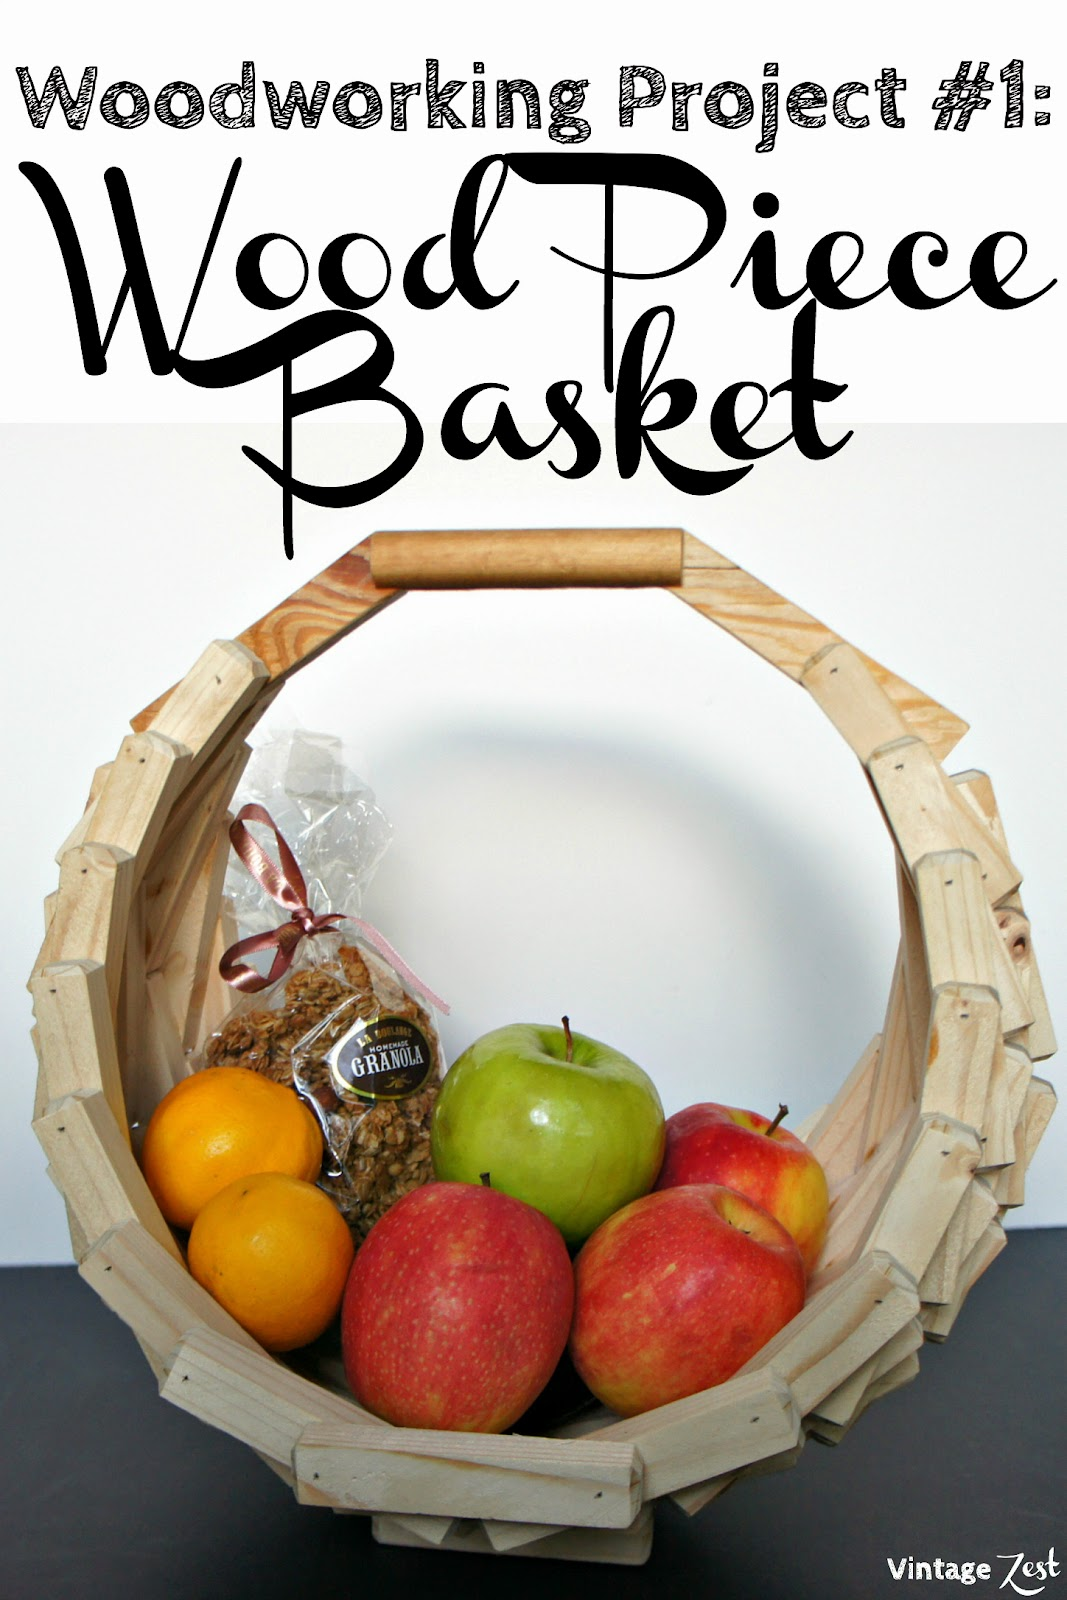 Wooden Basket (1st woodworking project!) on Diane's Vintage Zest!